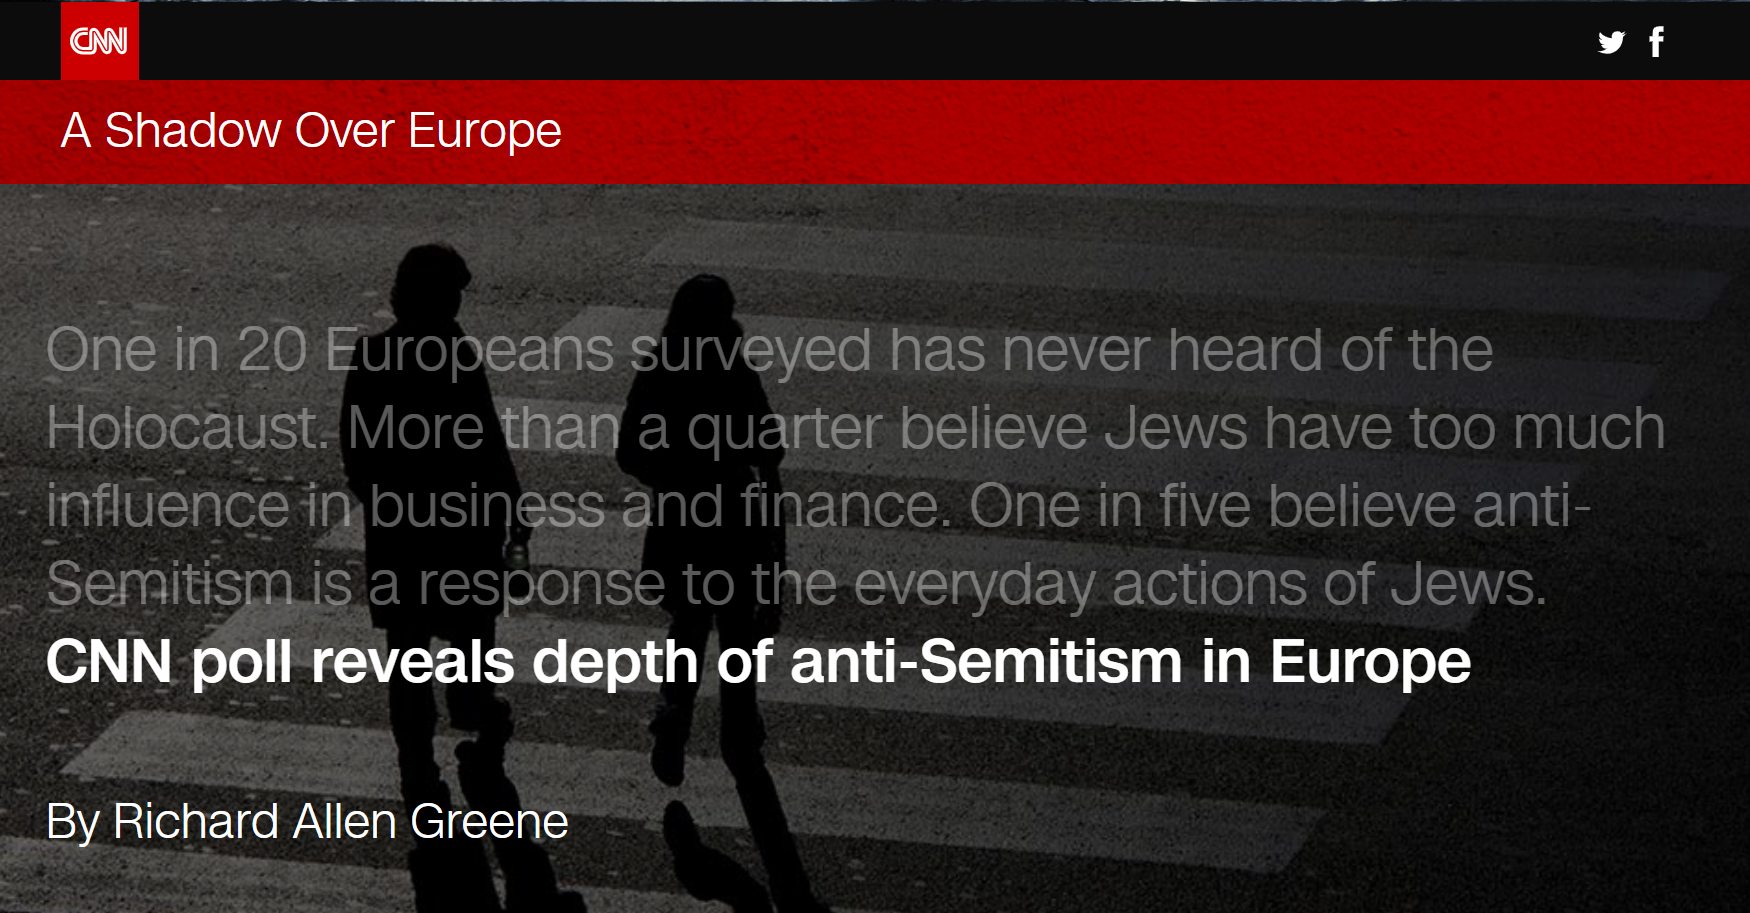 CNN Anti-Semitism